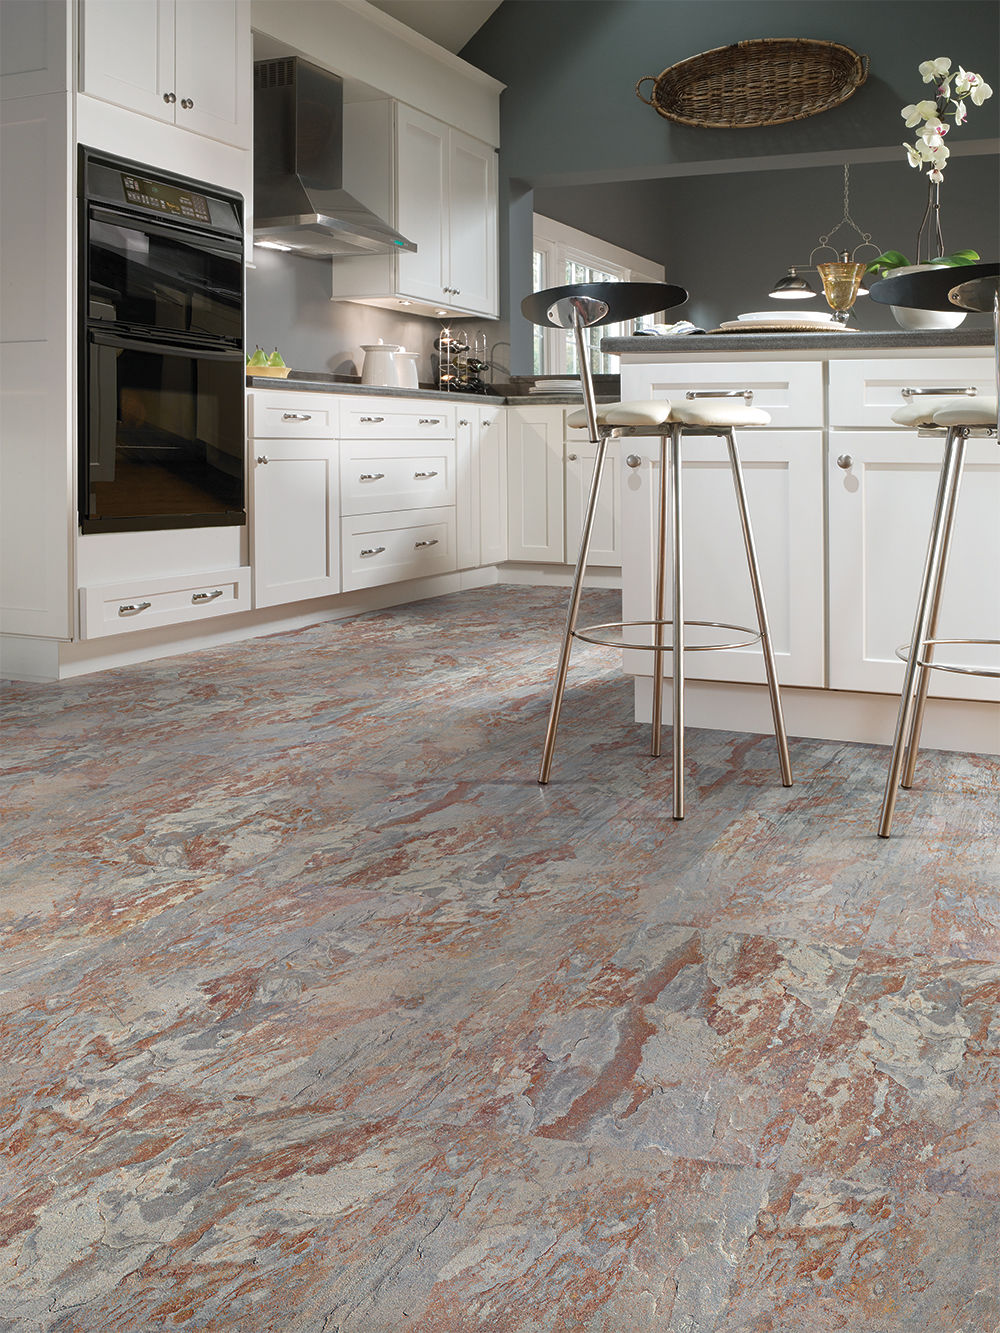 Us floors naturalcork cork canvas eco friendly non toxic we provide fast free shipping on samples dailygadgetfo Gallery